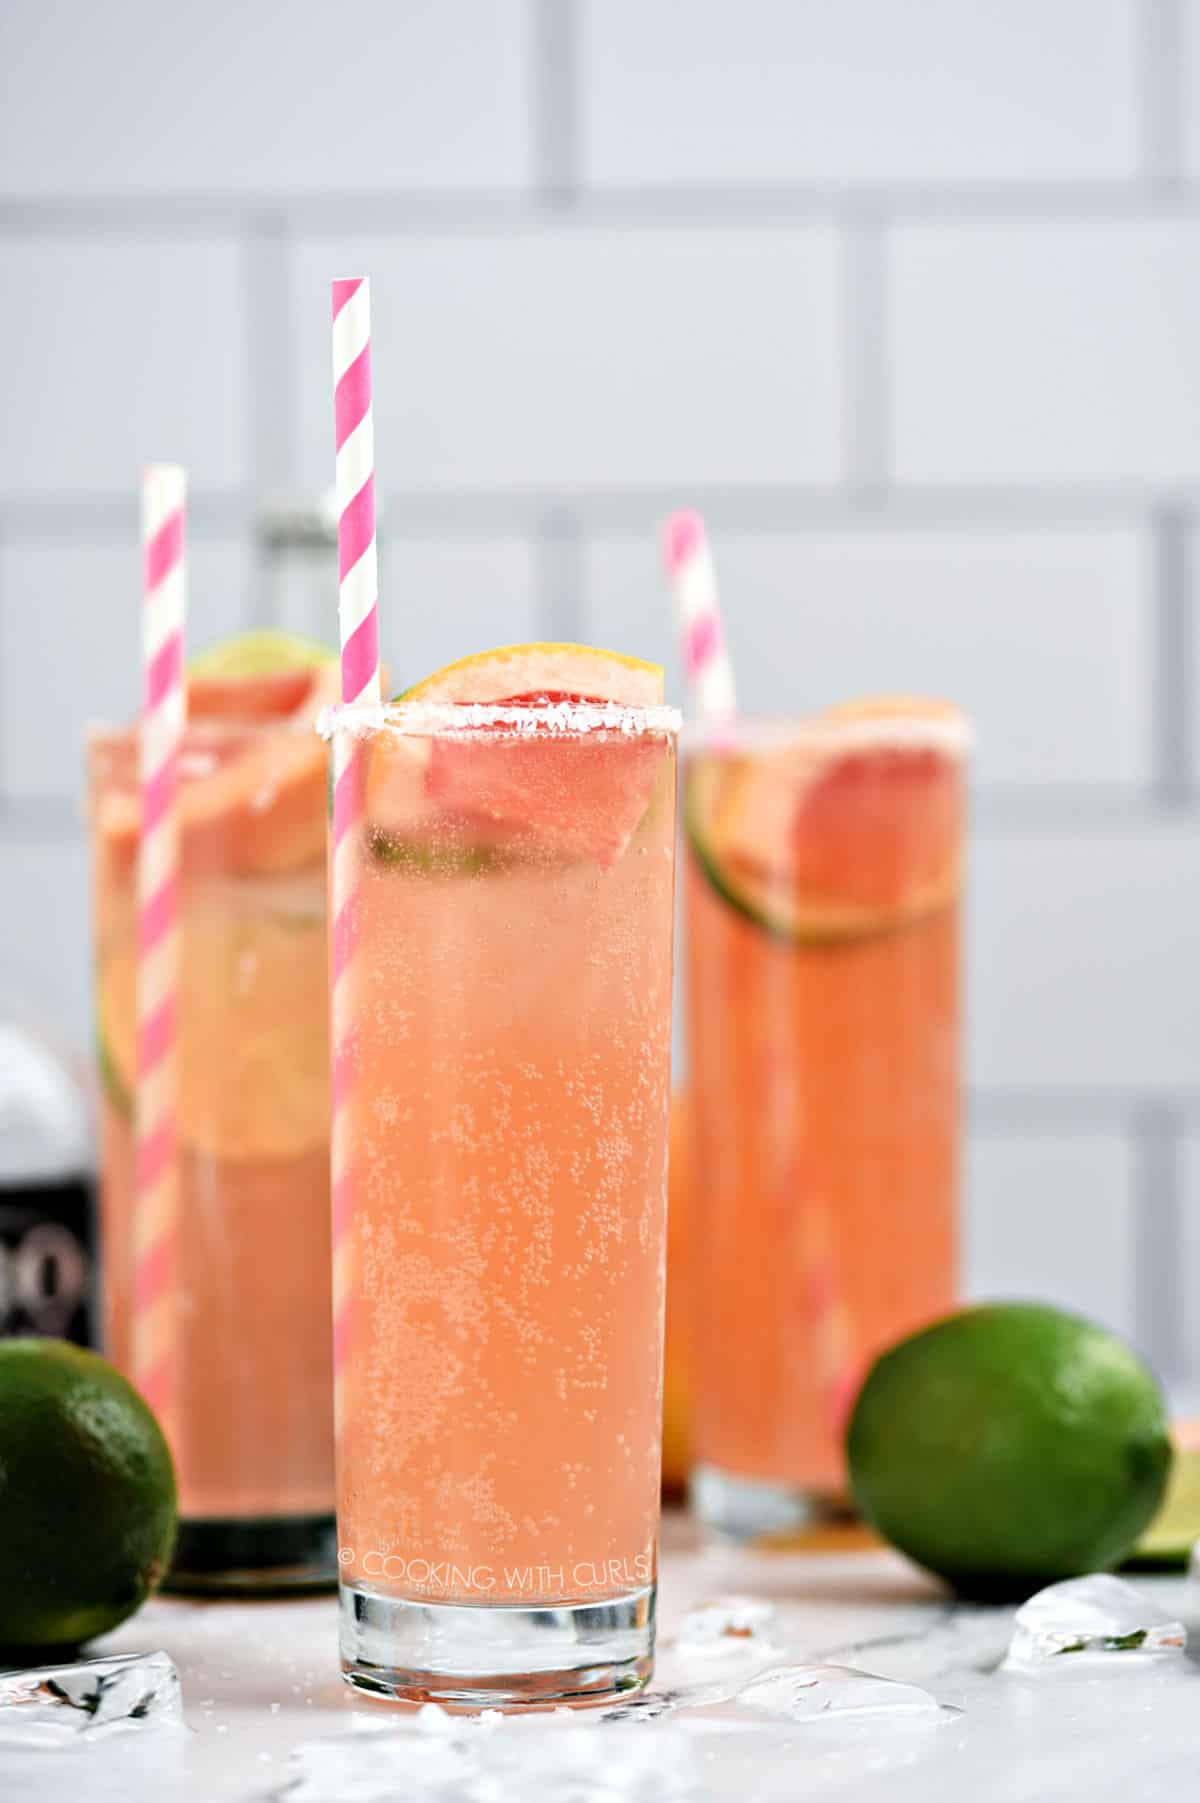 Three bubbly, pink Paloma cocktails in tall glasses garnished with a slice of lime and grapefruit with a pink and white striped straw.